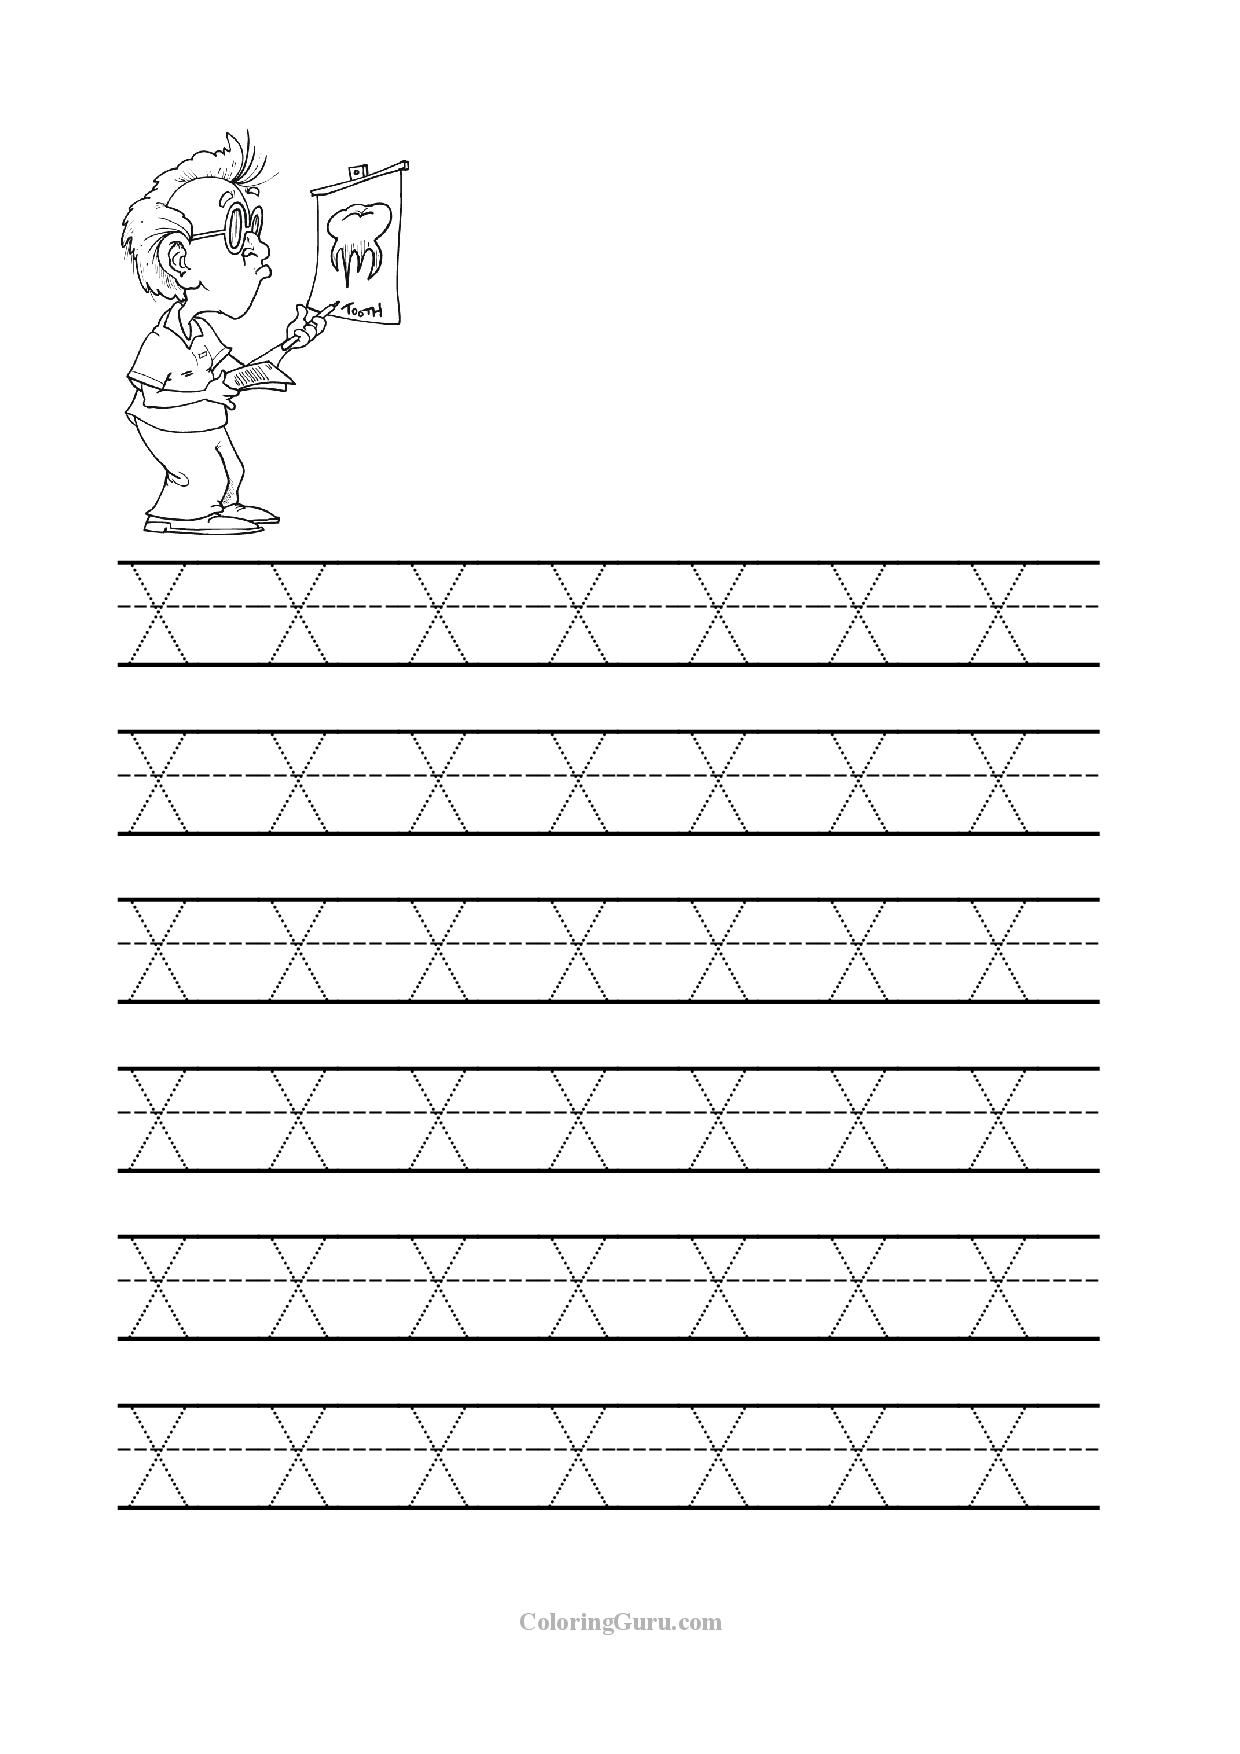 free printable tracing letter x worksheets for preschool coloring pages for kids. Black Bedroom Furniture Sets. Home Design Ideas